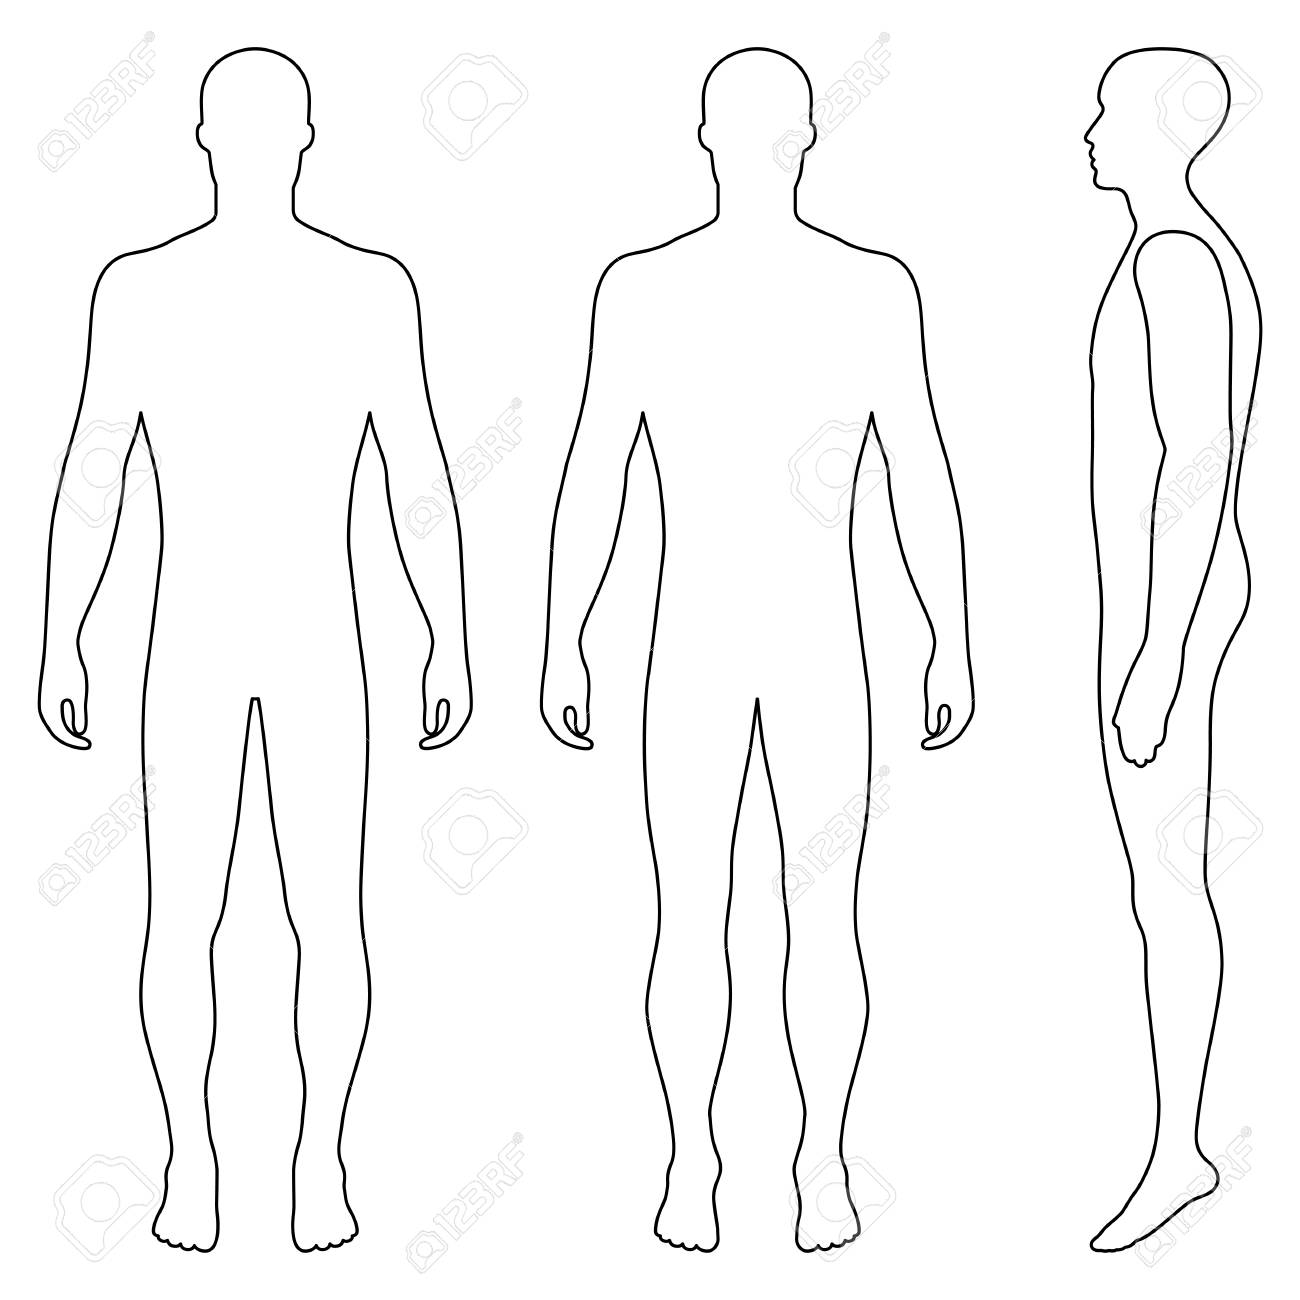 Fashion body full length bald template figure silhouette (front, back and side view), vector illustration isolated on white background - 82094758